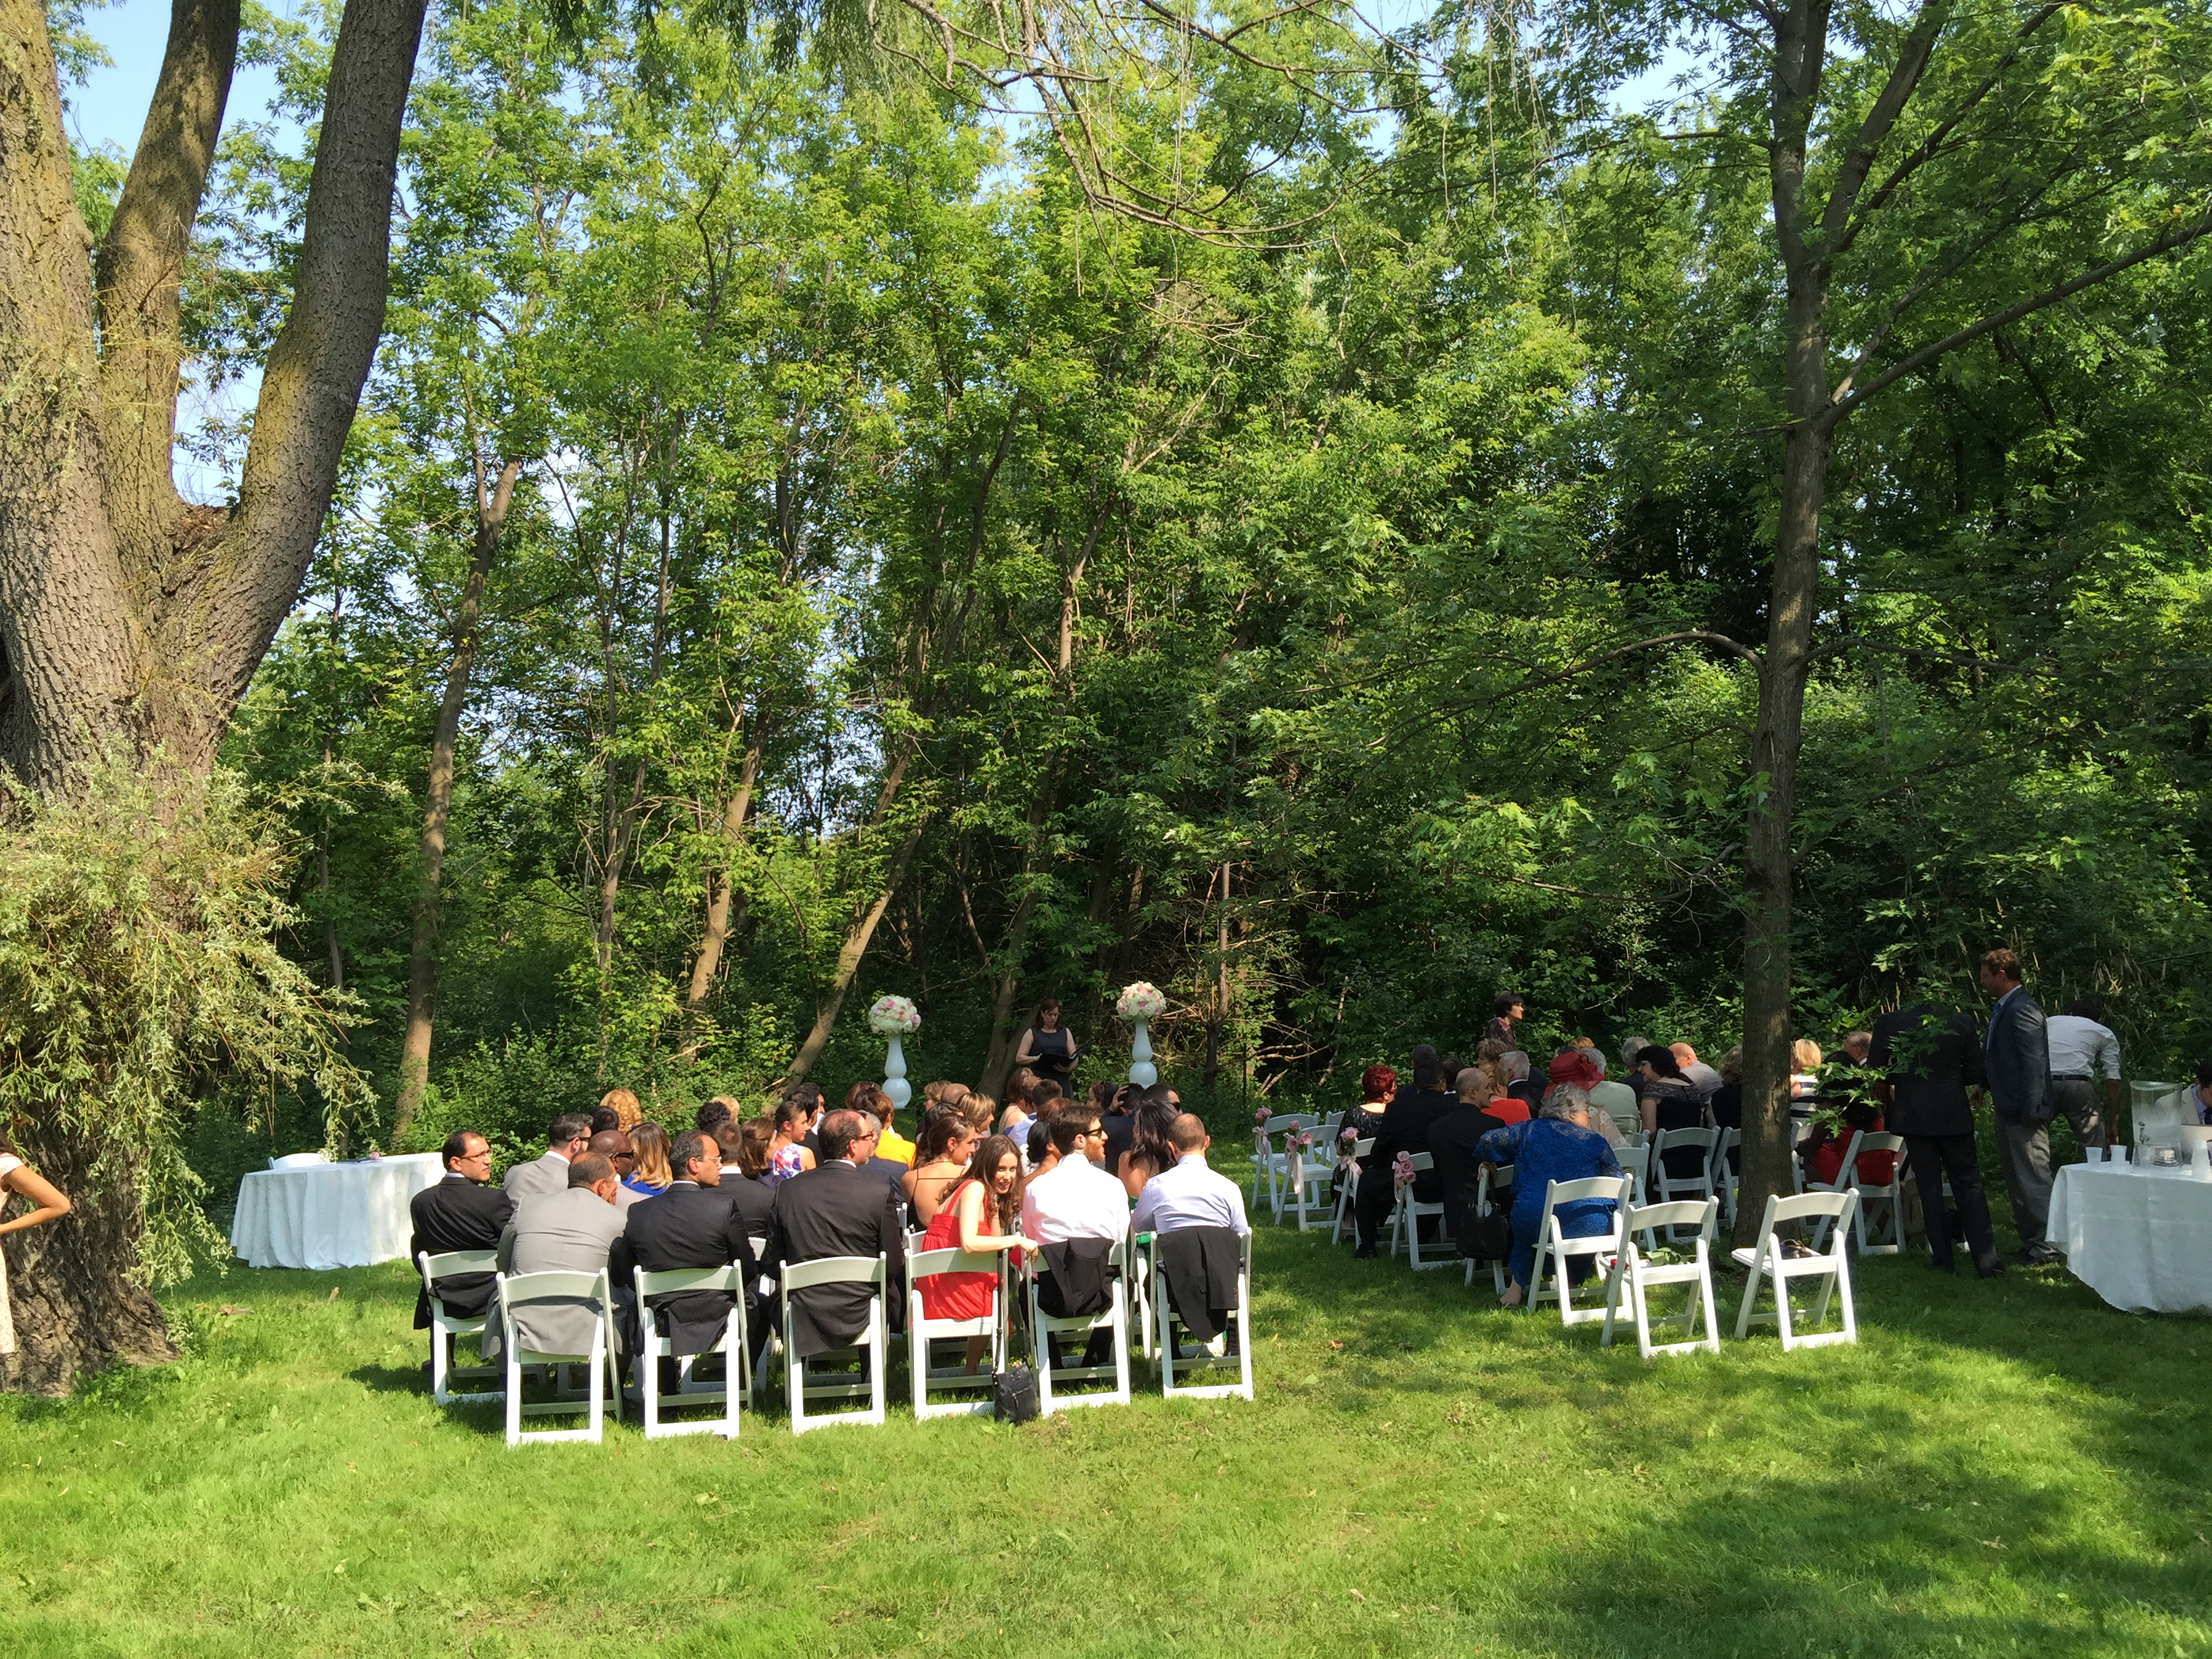 5 Dangers of Planning An Outdoor Wedding